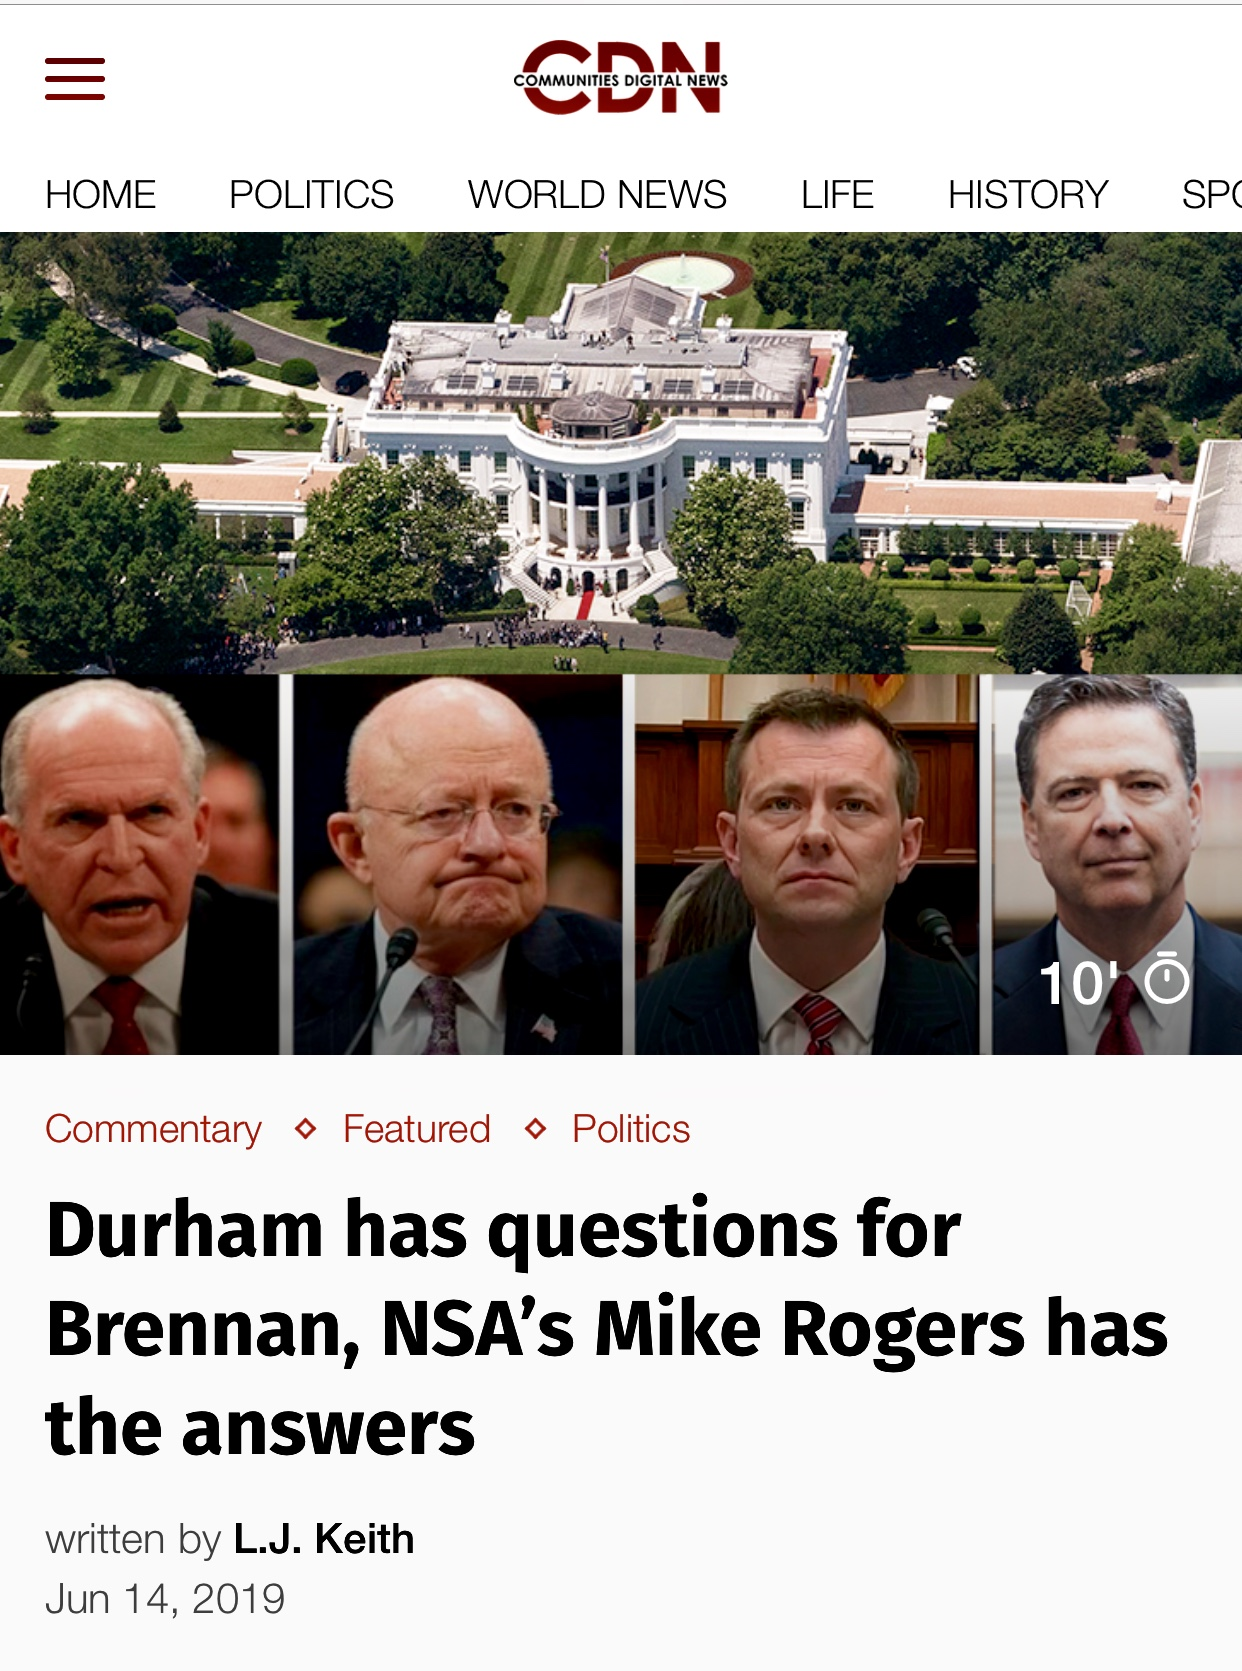 Durham has questions for Brennan, NSA's Mike Rogers has the answers